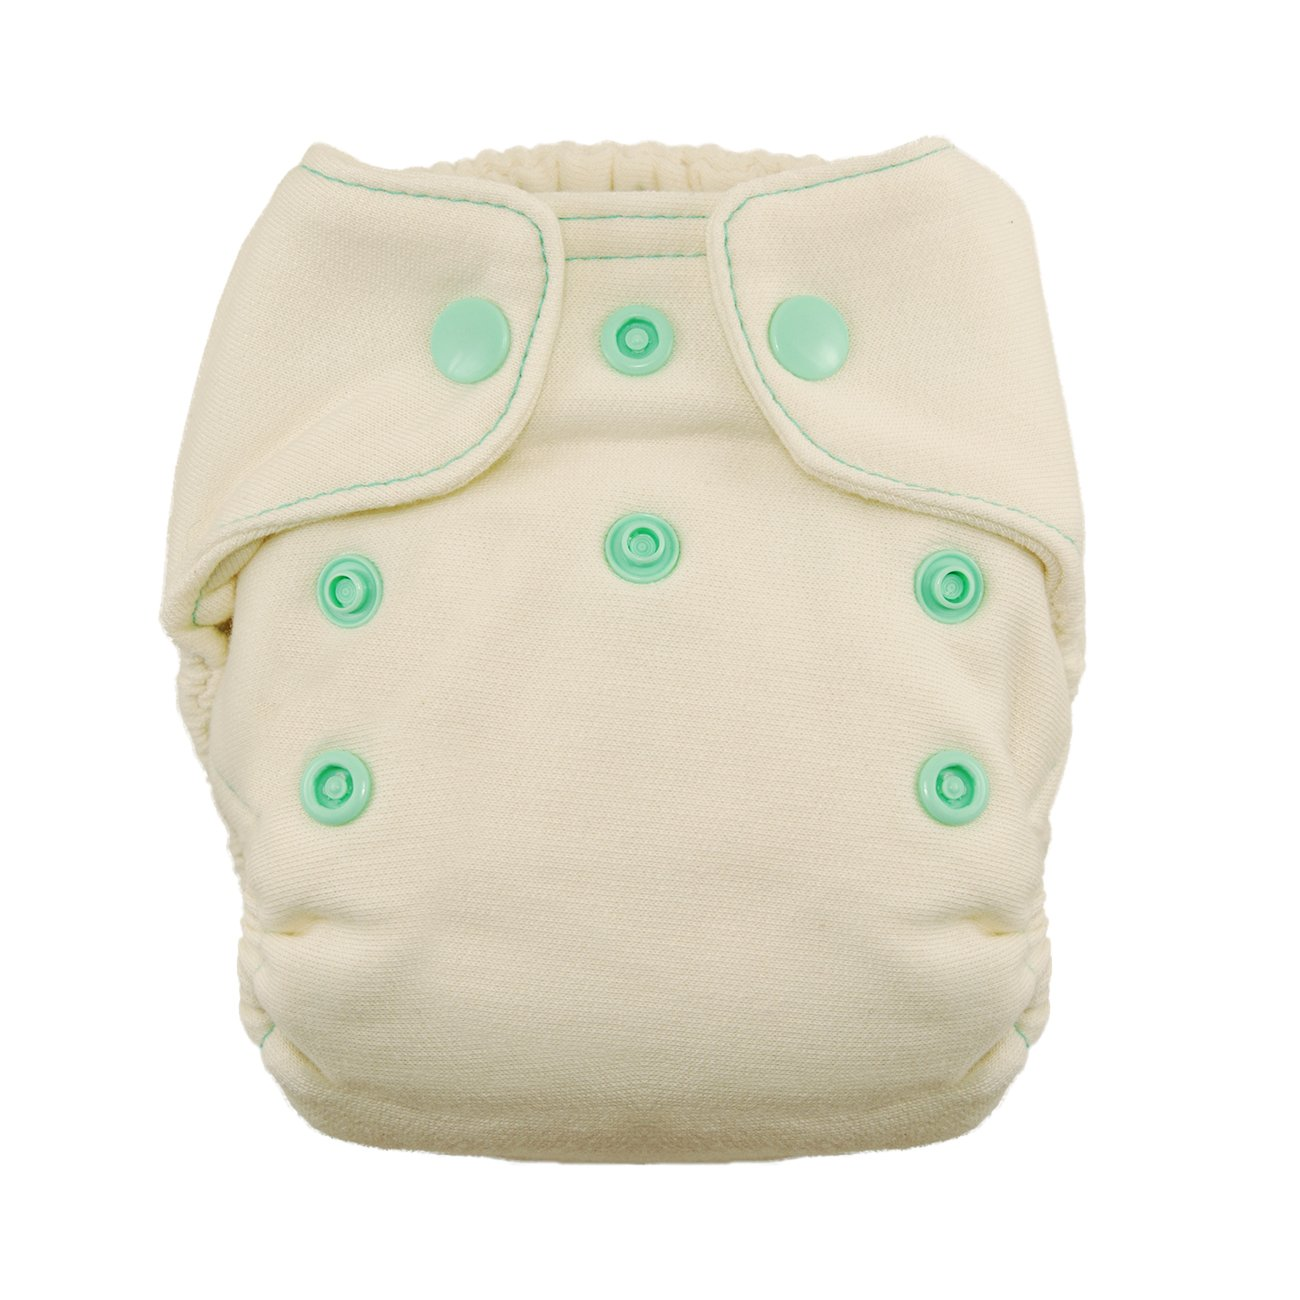 Thirsties Snap Natural Newborn Fitted, Moss Diapers TNATNFSMo